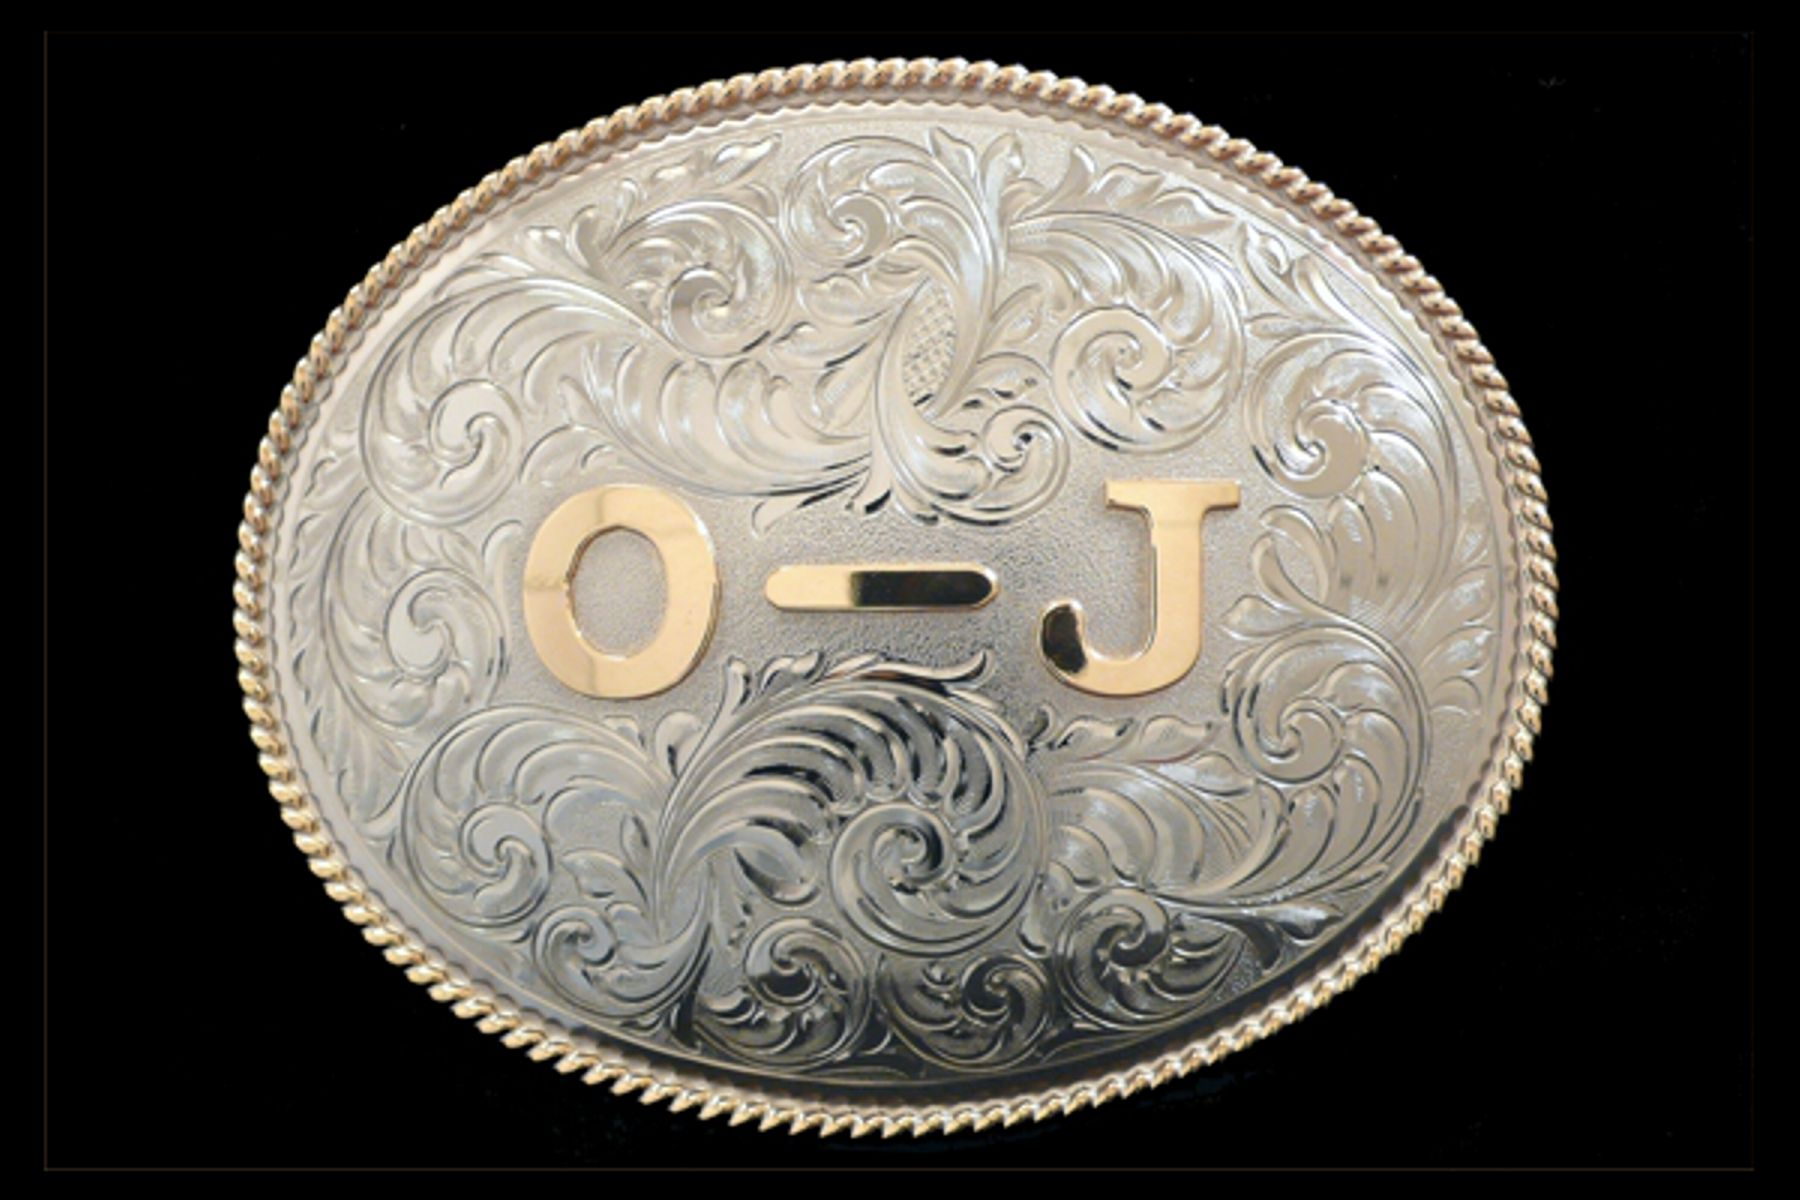 Hand Engraved Brand Buckle